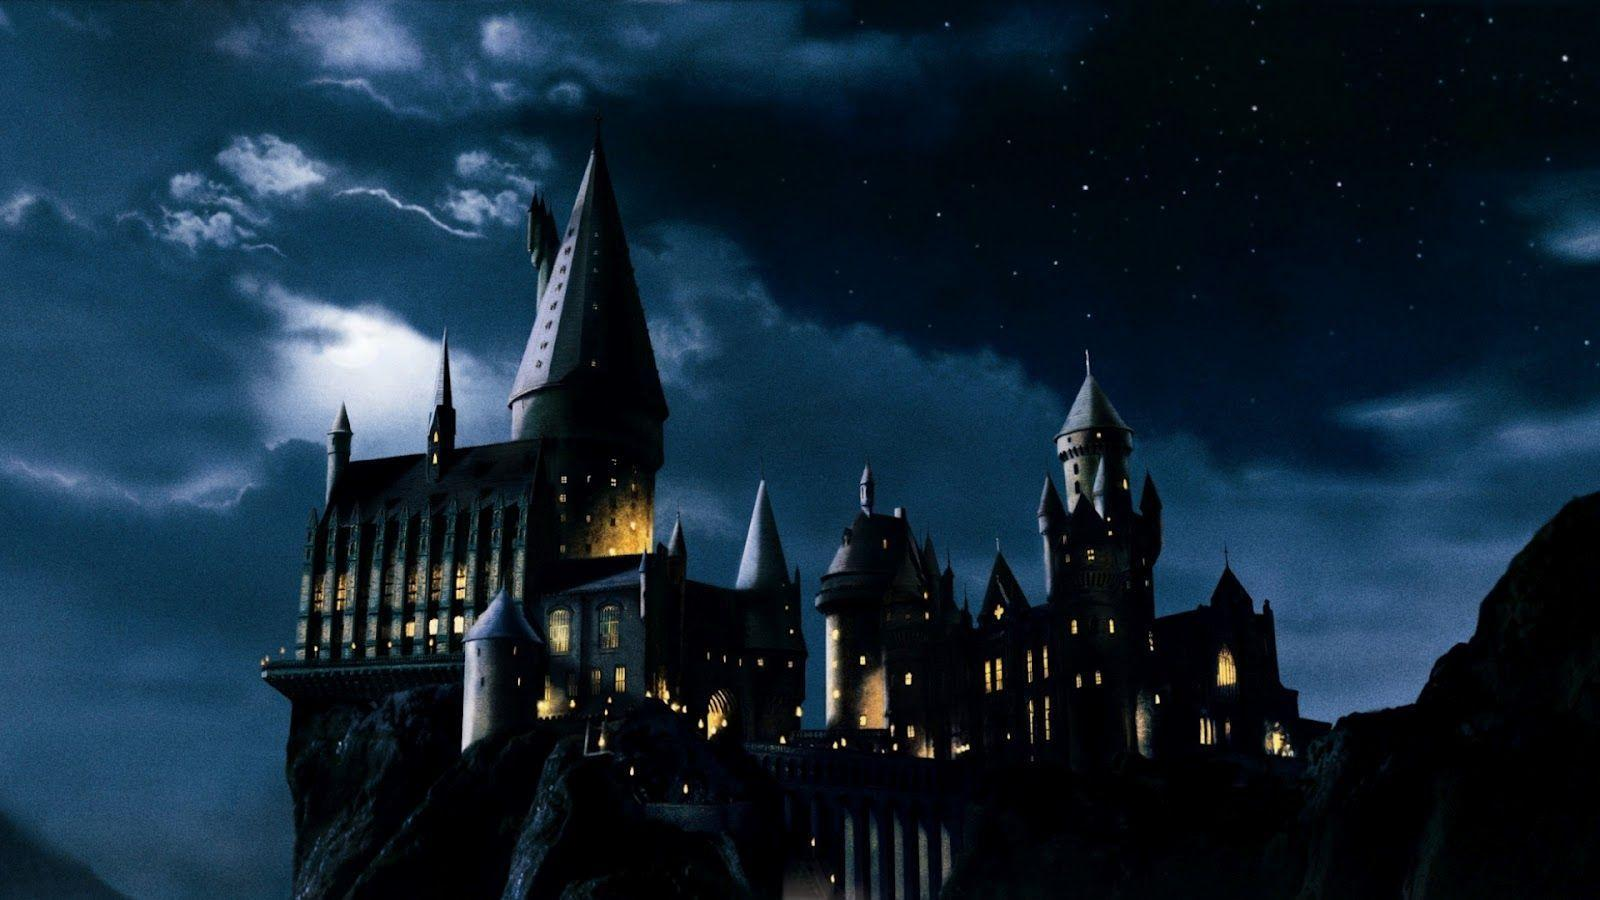 Hogwarts Desktop Wallpapers Top Free Hogwarts Desktop Backgrounds Wallpaperaccess